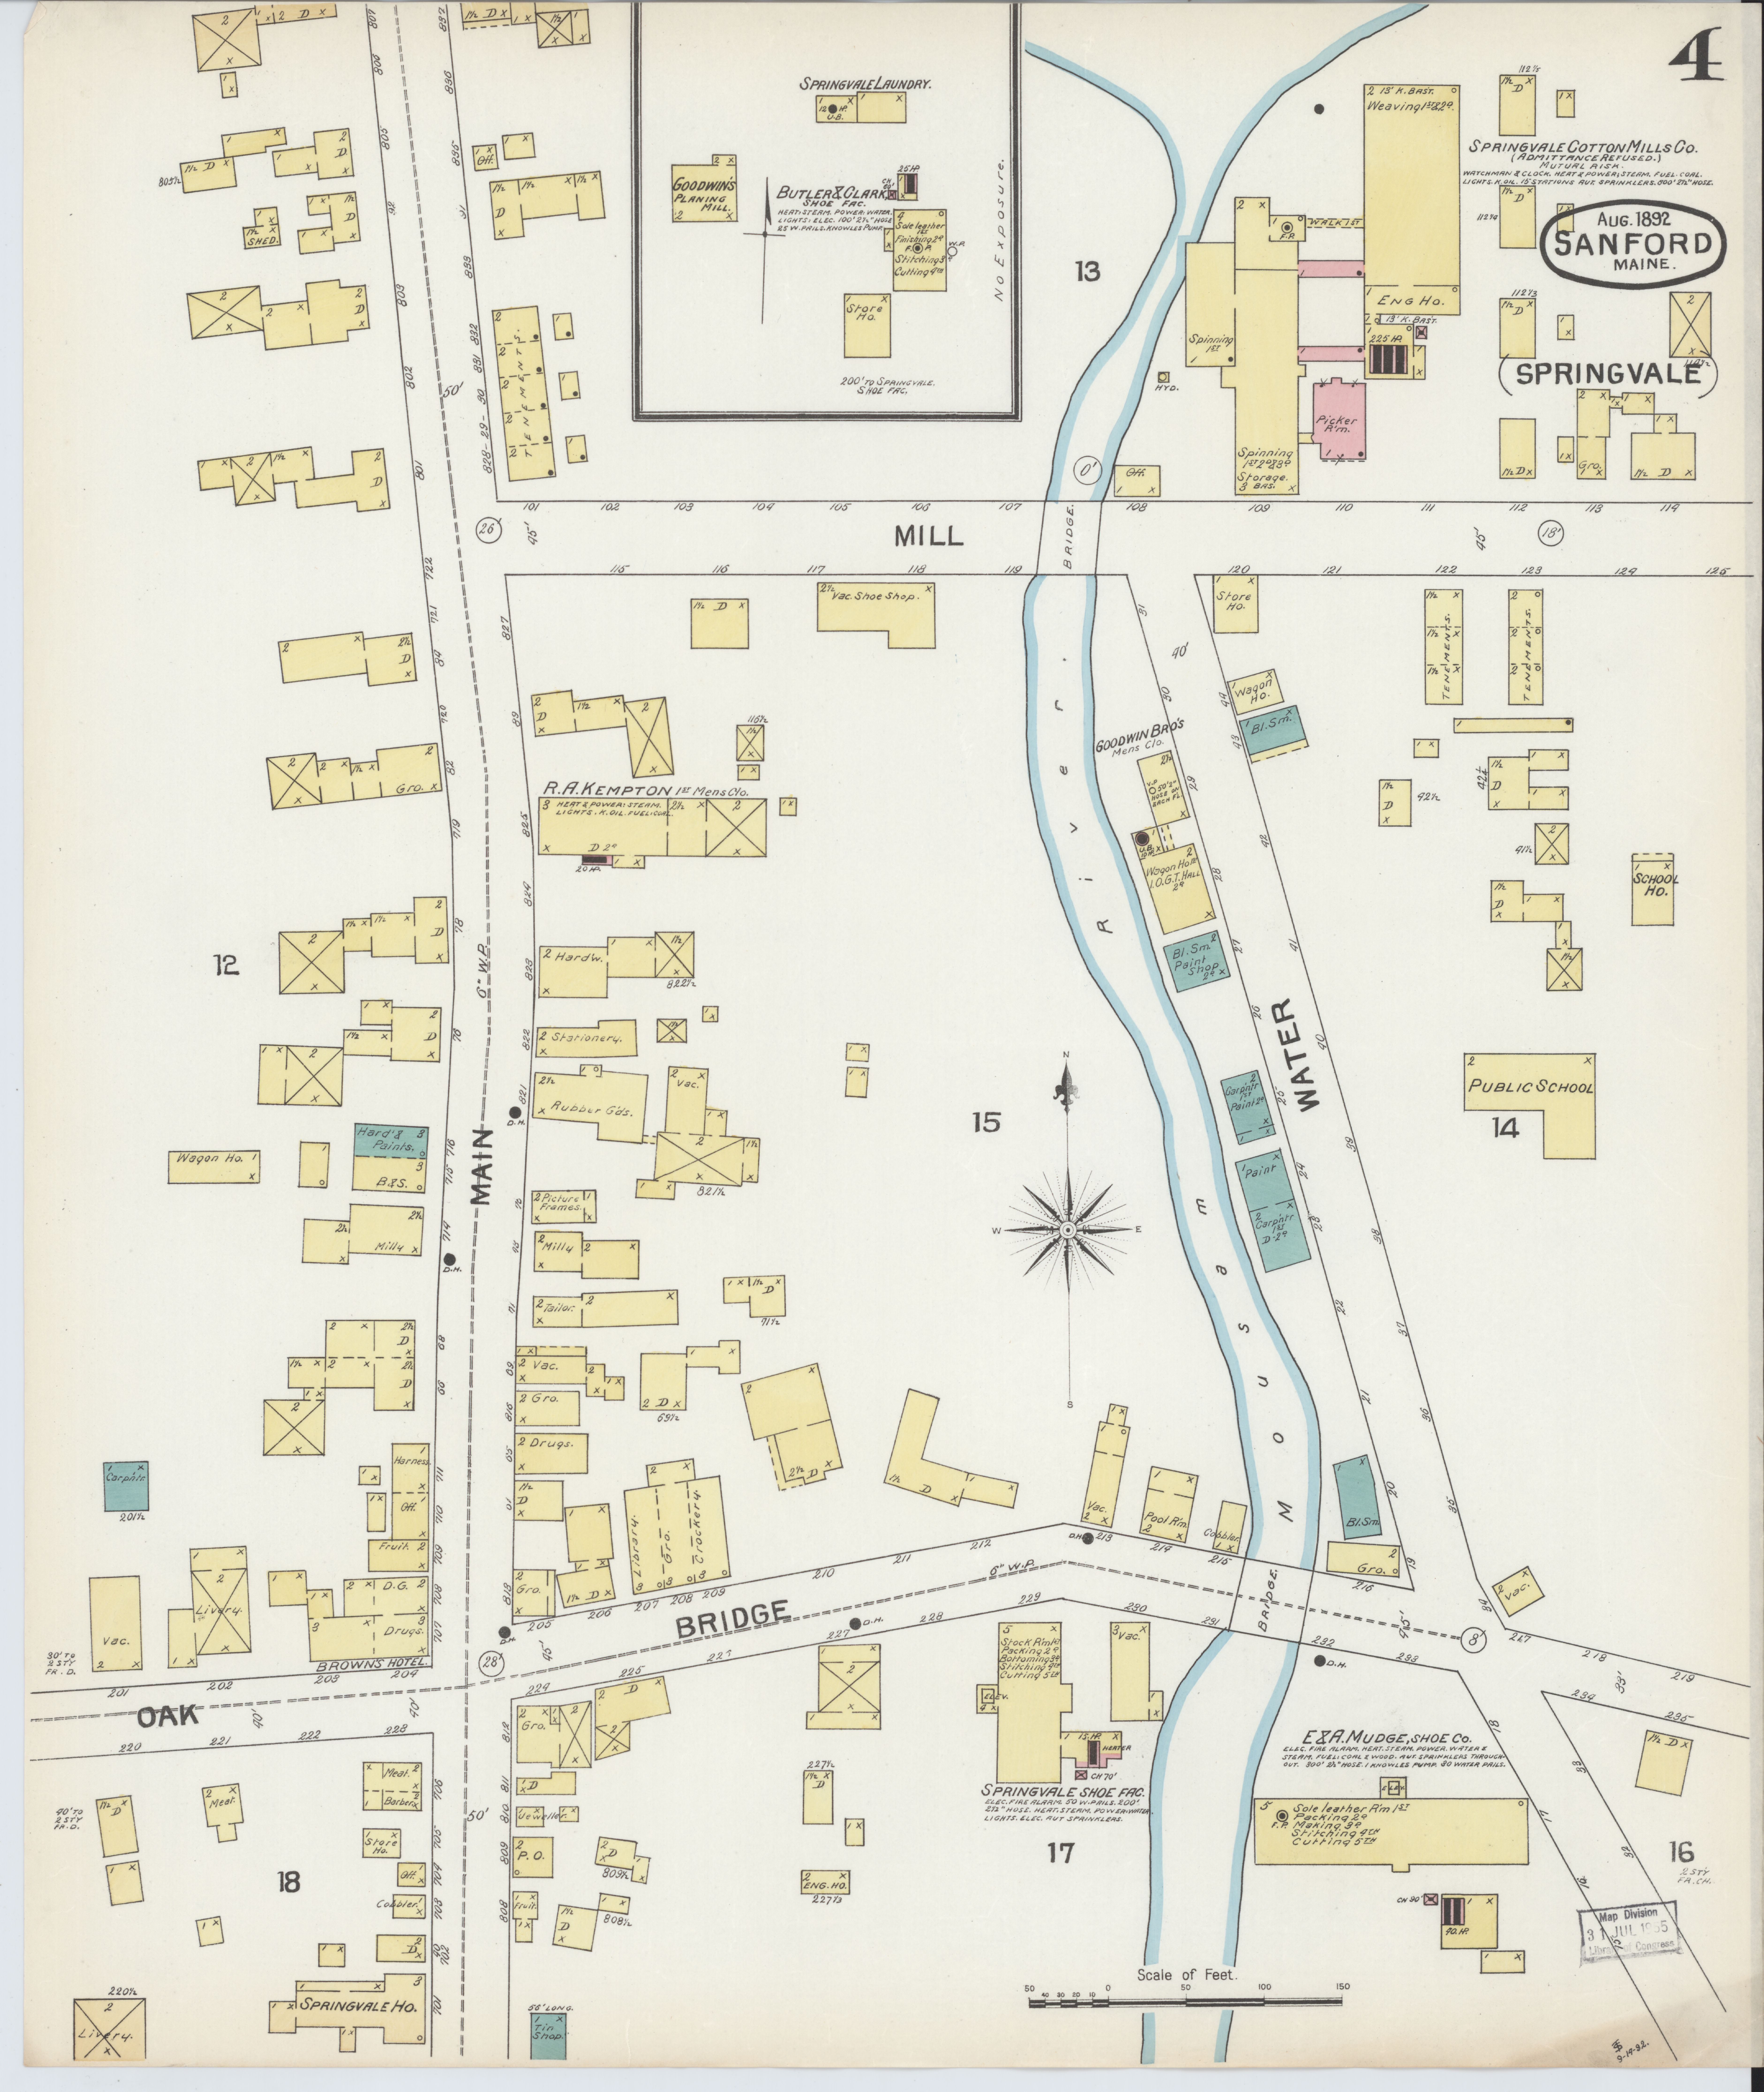 File:Sanborn Fire Insurance Map from Sanford, York County ... on warm mineral springs map, seminole towne center map, staten map, whispering pines map, goldenrod map, boothbay region map, frostproof map, southwest orlando map, port clyde map, lake mary map, scott lake map, bonifay map, silver valley map, west volusia map, lee vista map, ontario intl airport map, bennettsville map, thonotosassa map, central carolina community college map, rose city map,